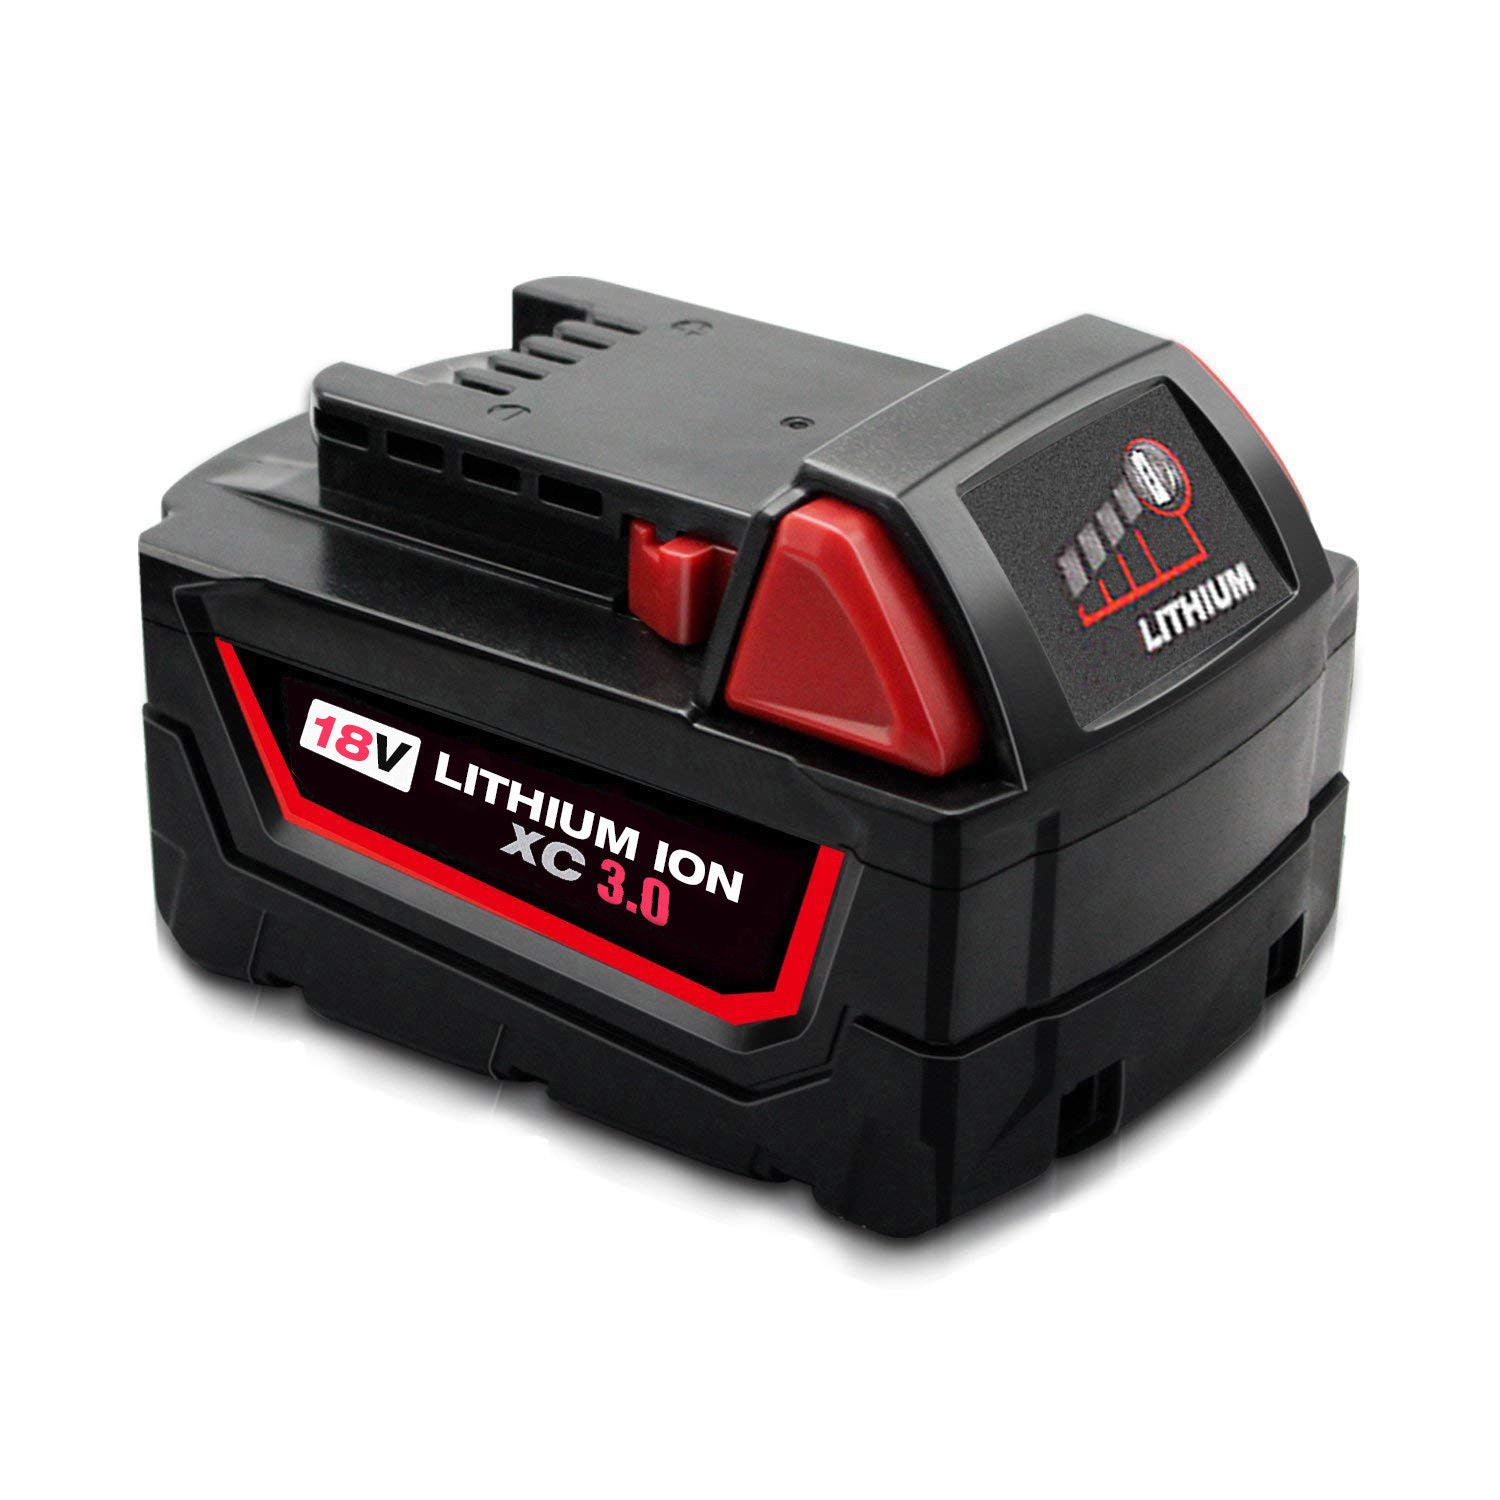 For Milwaukee 18V Battery Replacement | 48-11-1850 3.0Ah Li-Ion Battery